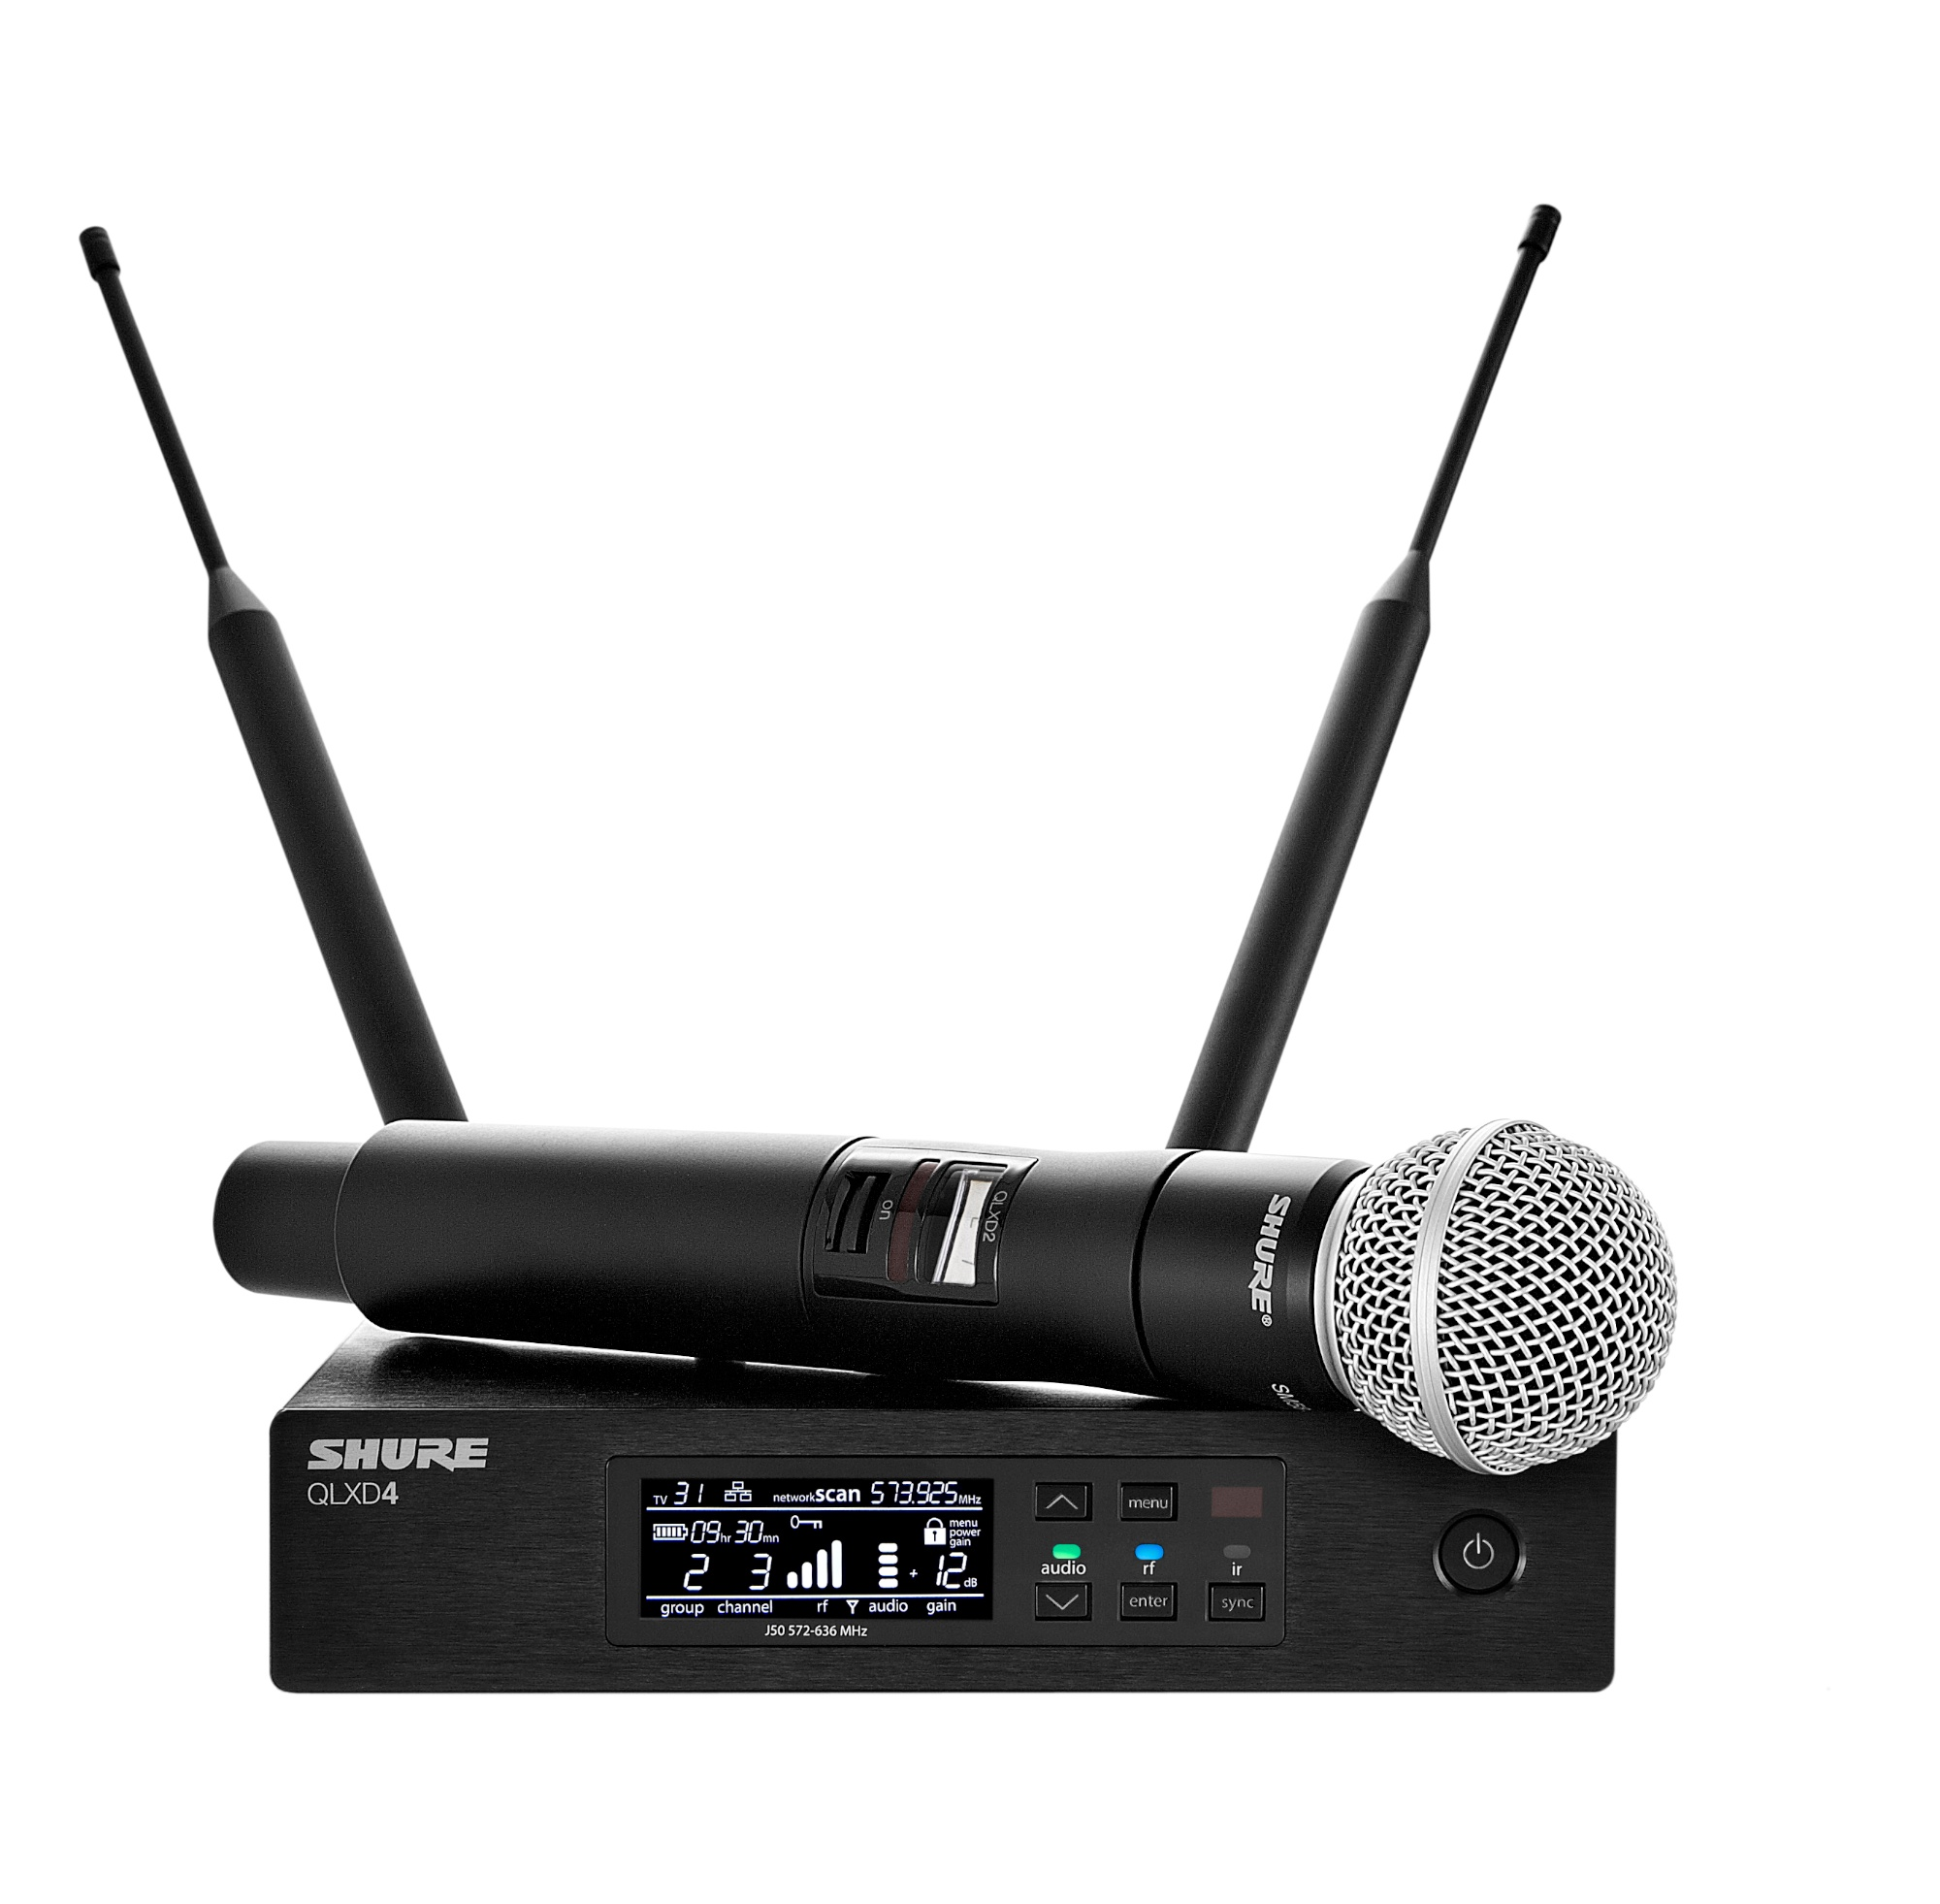 shure qlxd24 sm58 digital wireless handheld microphone system pro audio superstore. Black Bedroom Furniture Sets. Home Design Ideas